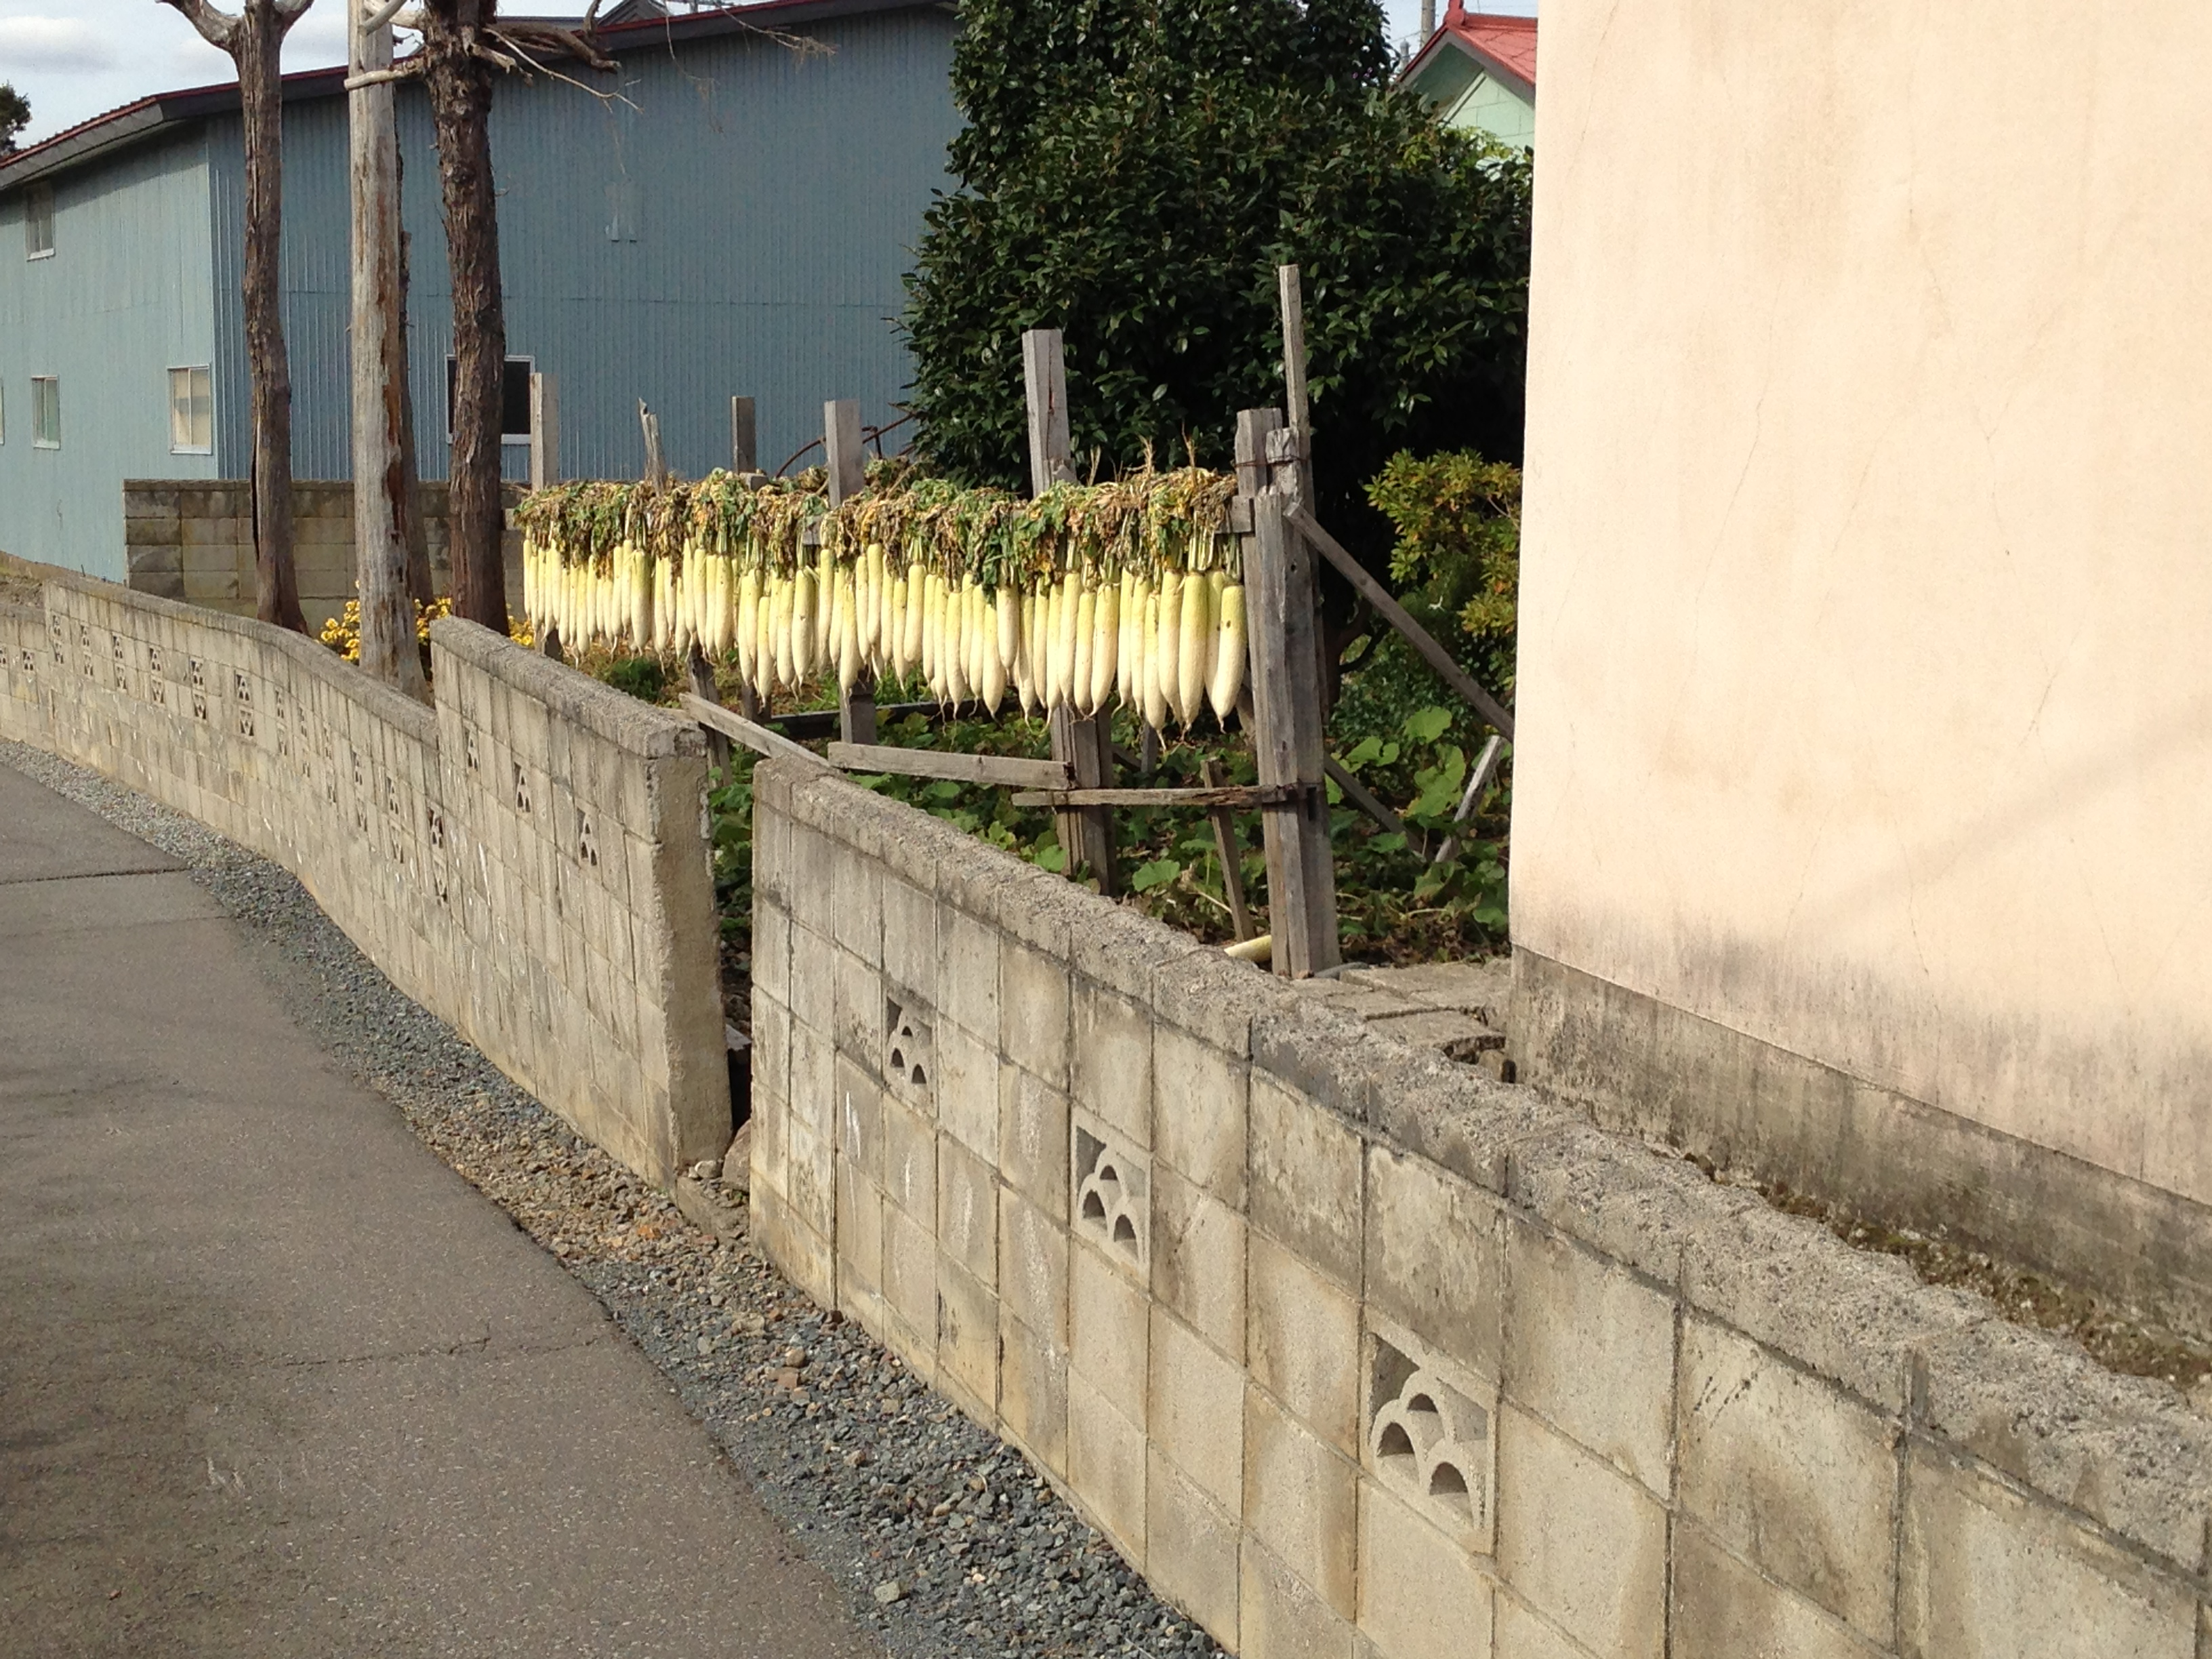 Autumn's the time for people to harvest their daikon radishes, too. And then they get hung out to dry.